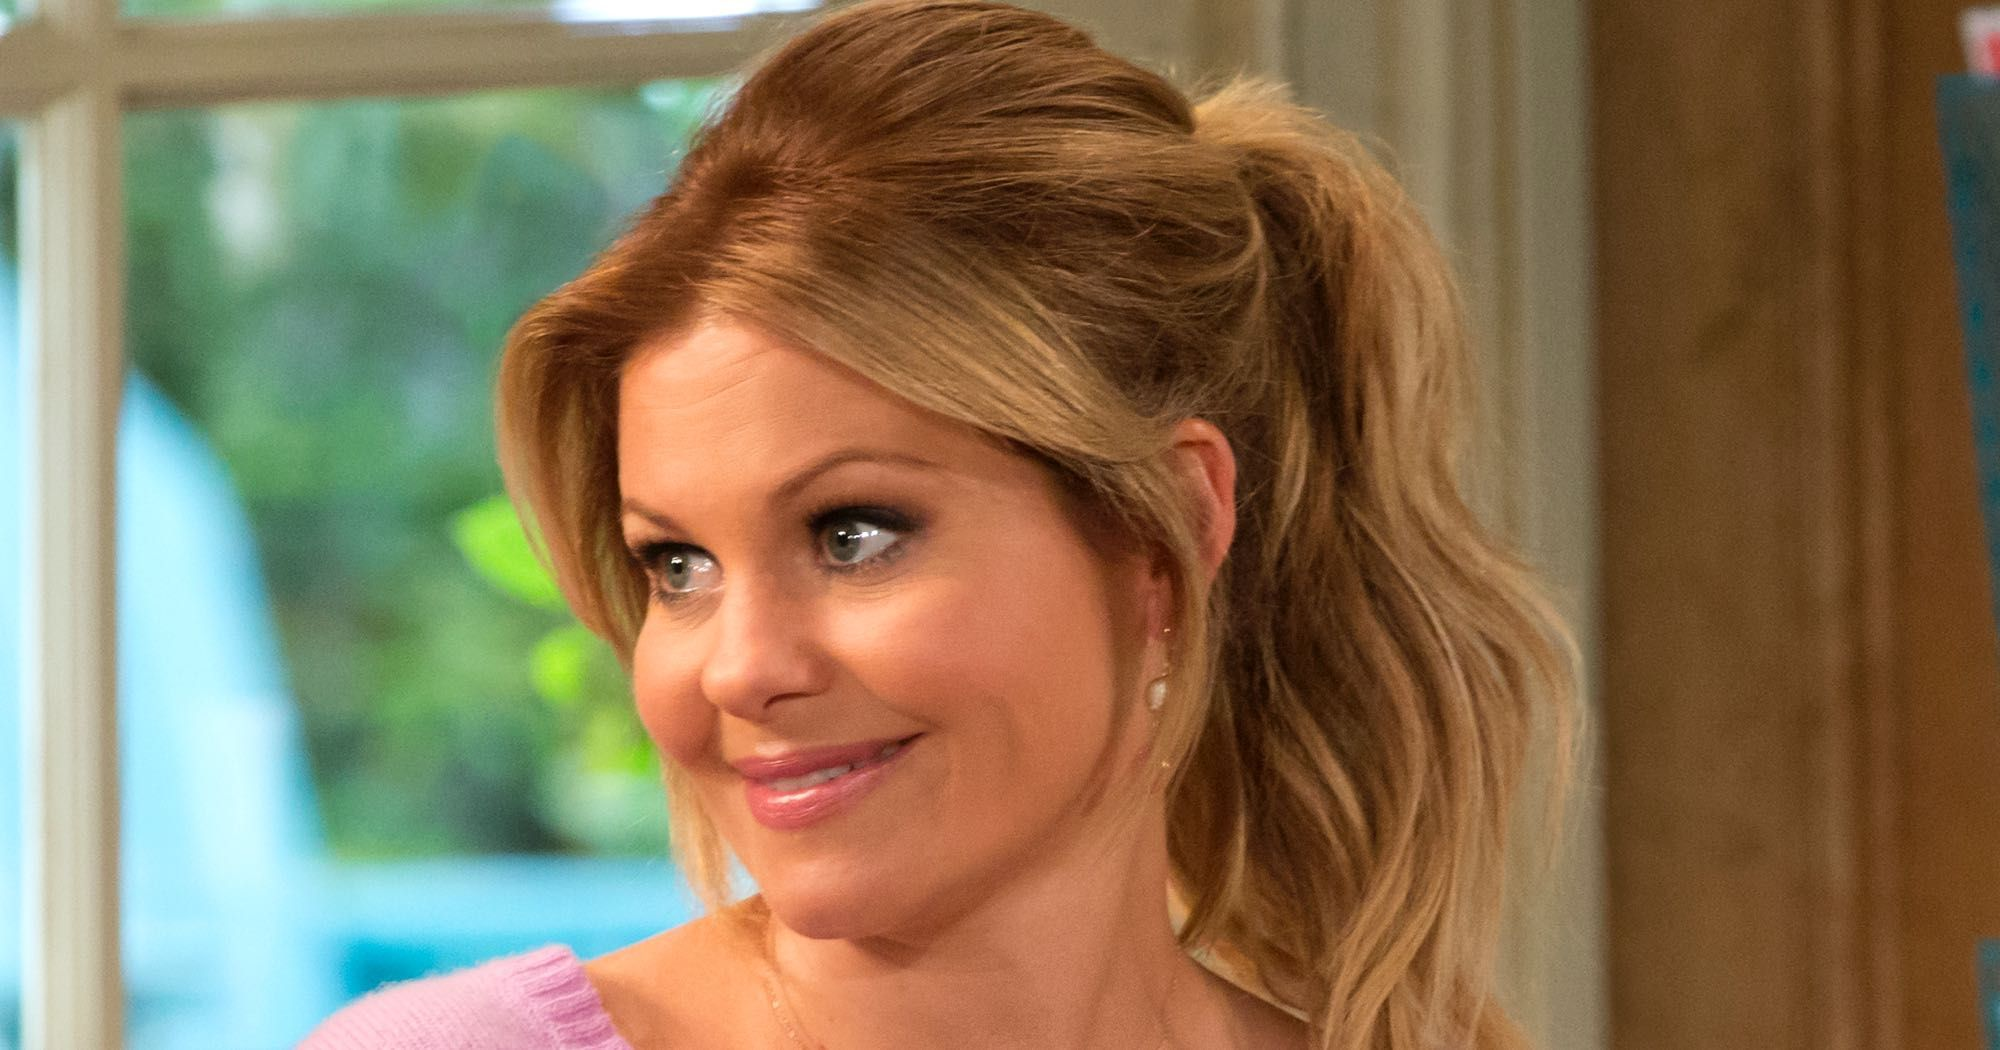 Candace Cameron Bure's Hair Is Completely Different Now #candacecameronburehairstyles